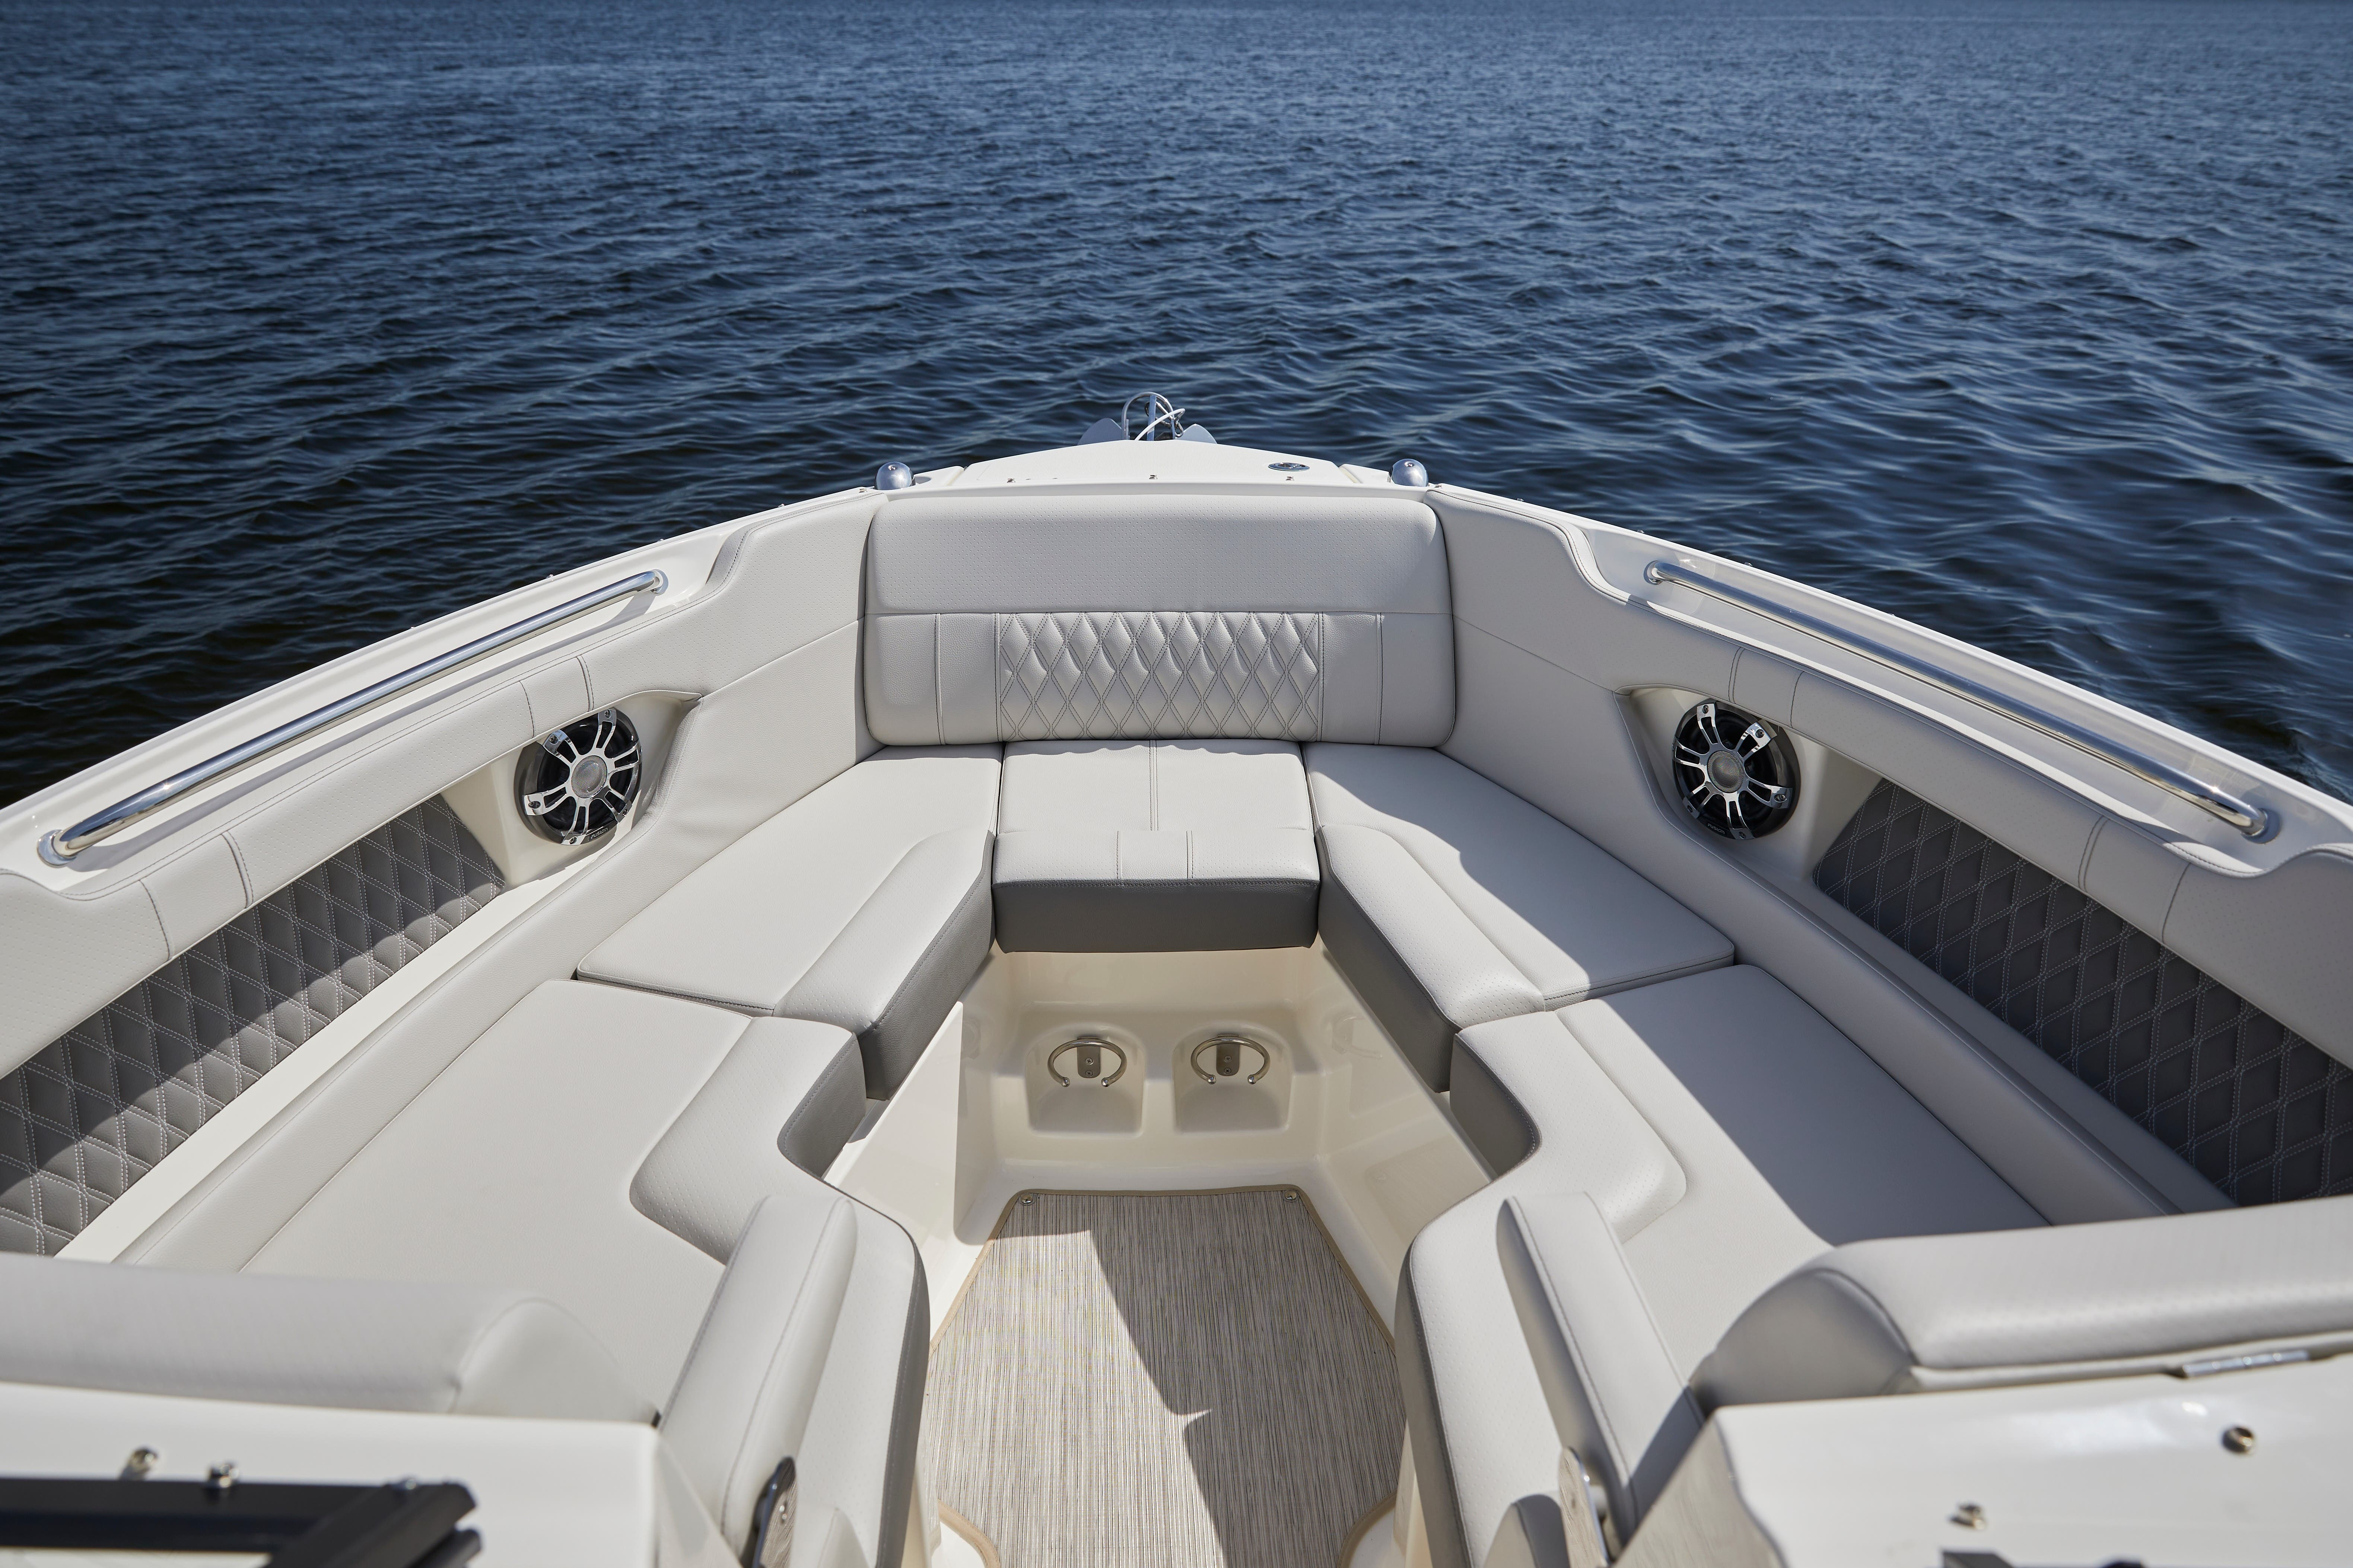 2022 Sea Ray boat for sale, model of the boat is 250slx & Image # 6 of 6